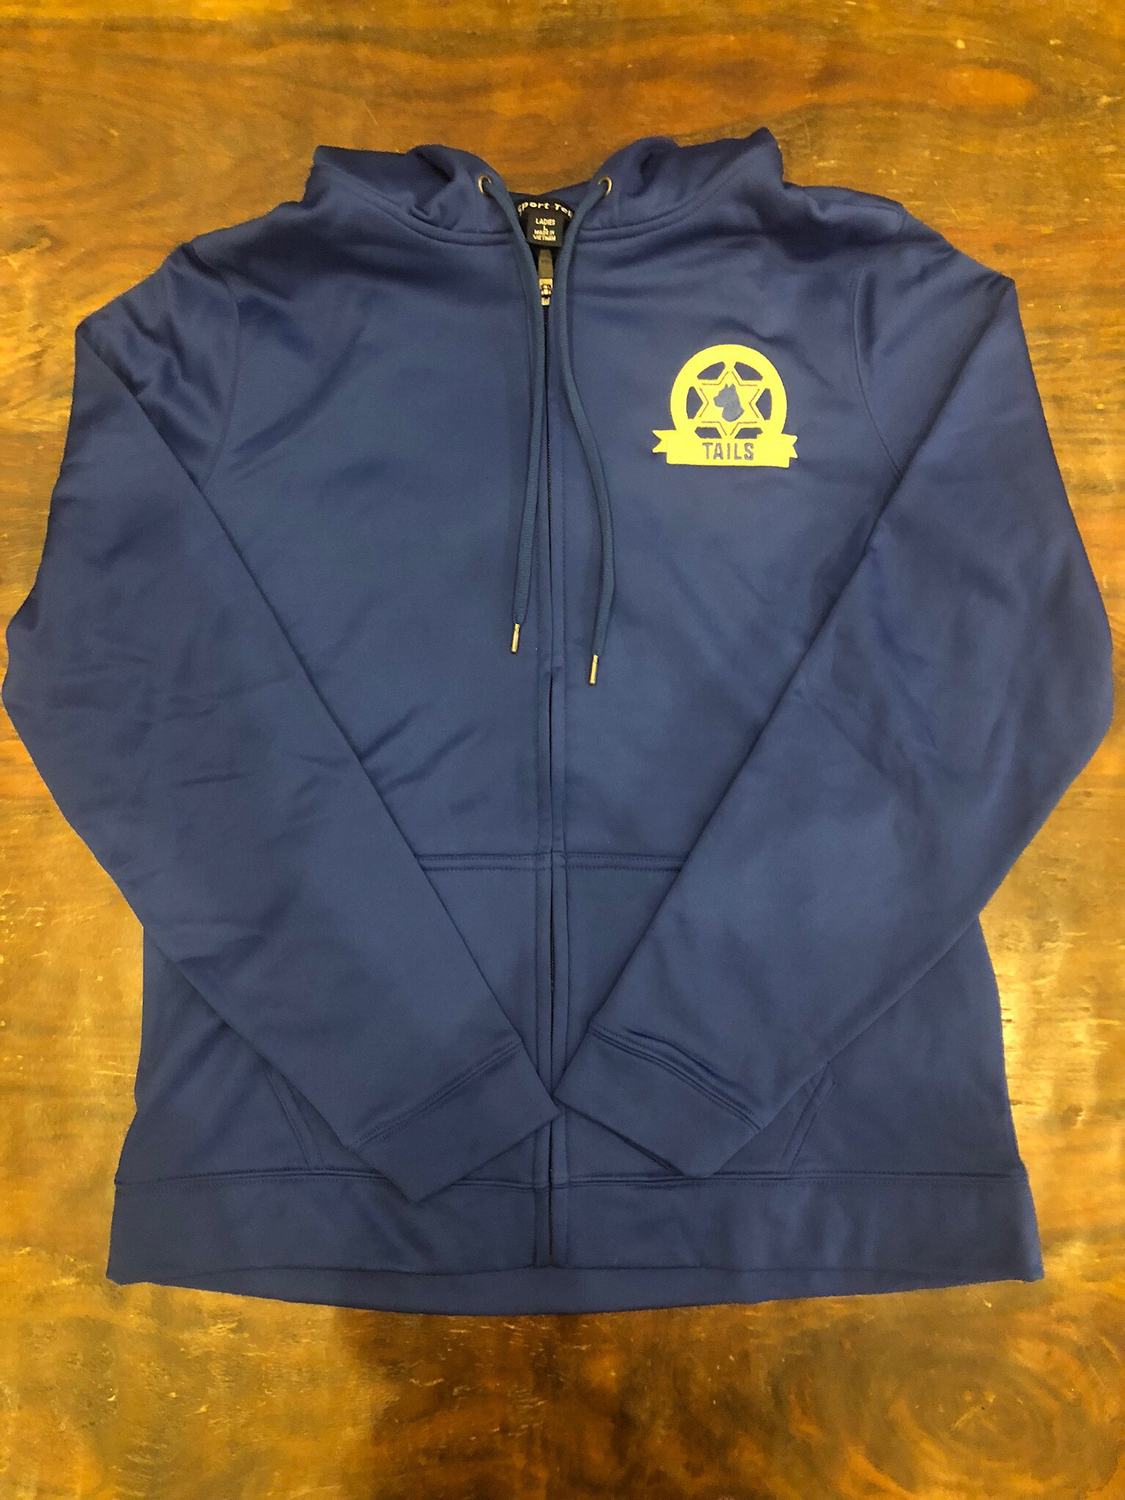 Blue TAILS hooded, zip front jacket - XL